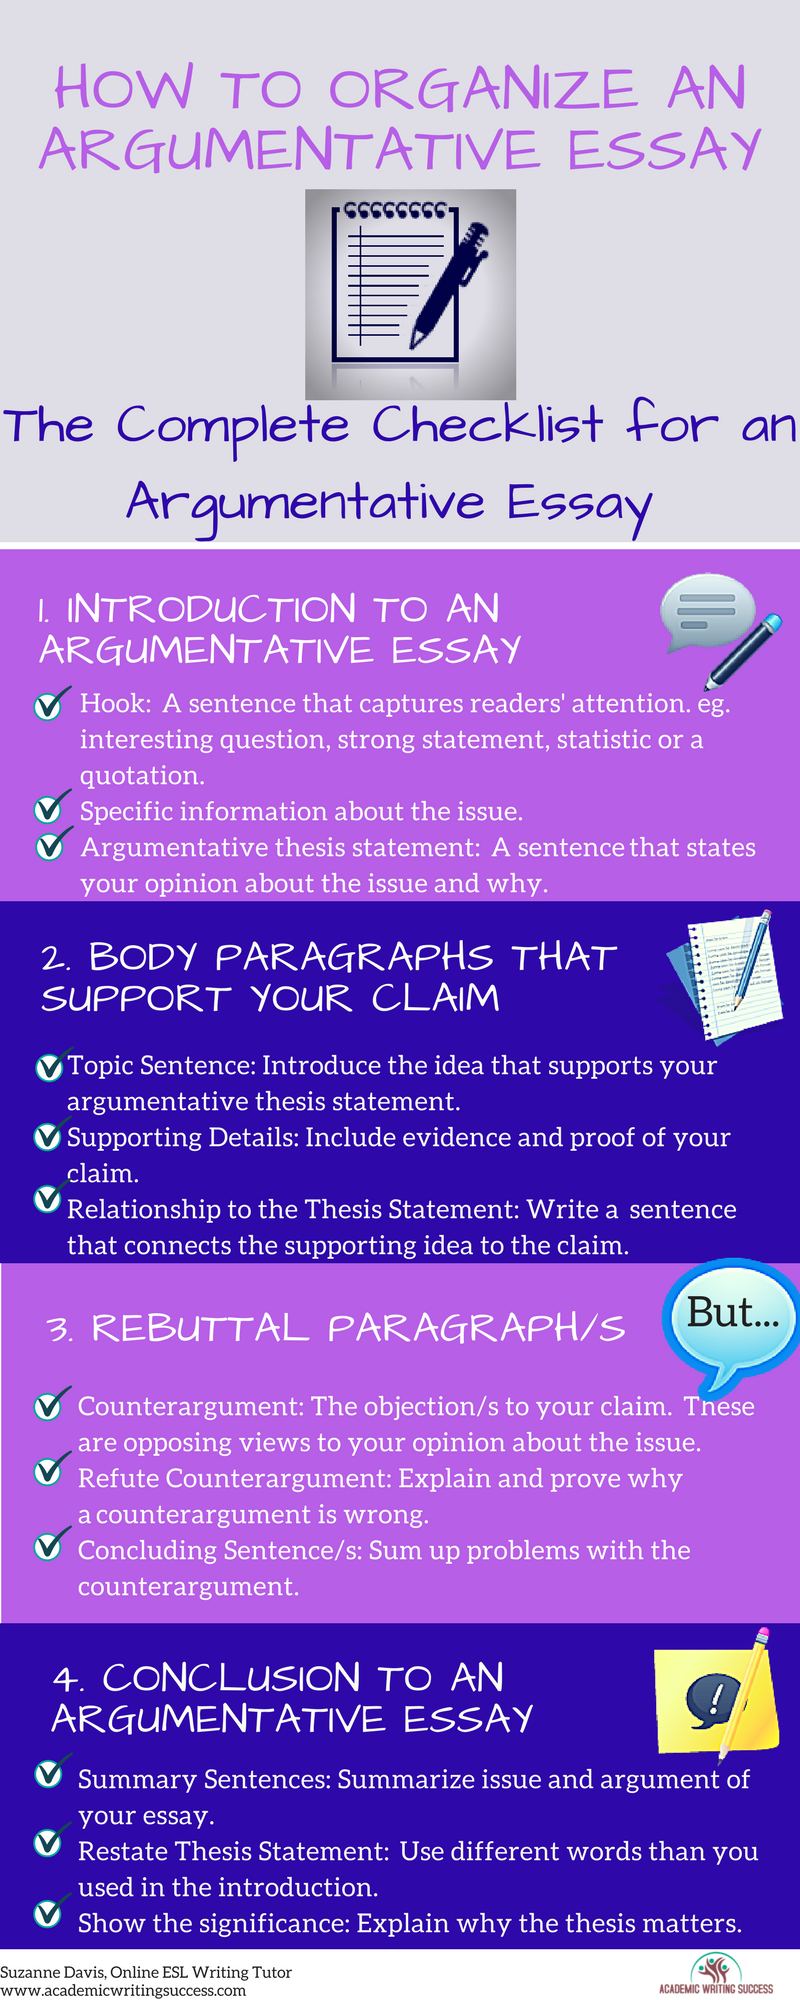 Persuasive Essay Example High School  How To Write A High School Application Essay also Compare And Contrast Essay High School Vs College The Ultimate Guide On How To Organize A Bold Argumentative  Thesis For Argumentative Essay Examples